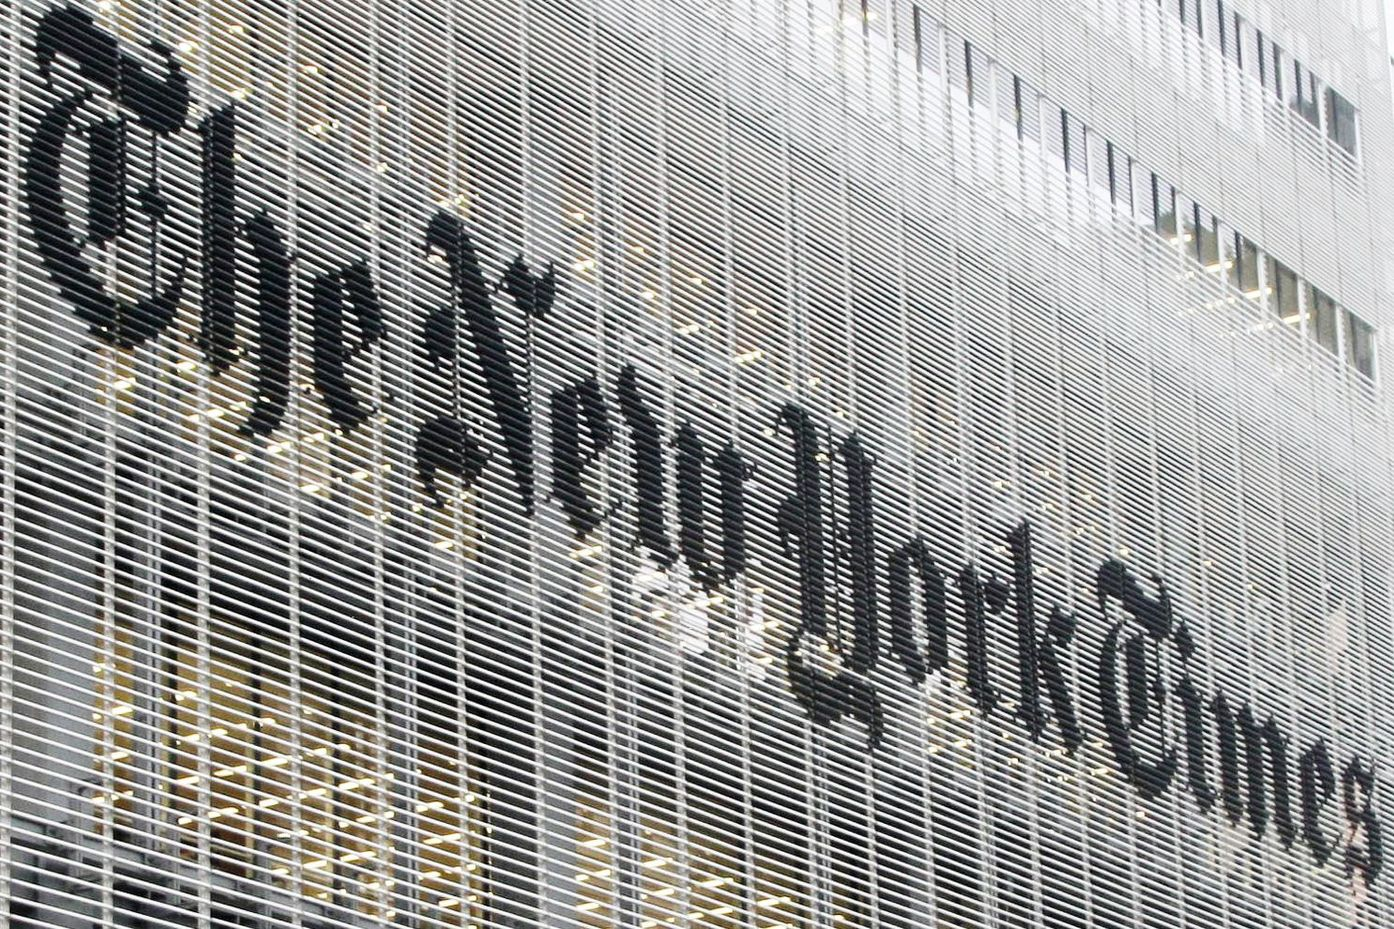 Michael Barbaro, NYT host, pressured media to 'temper their critiques' of 'Caliphate': Report